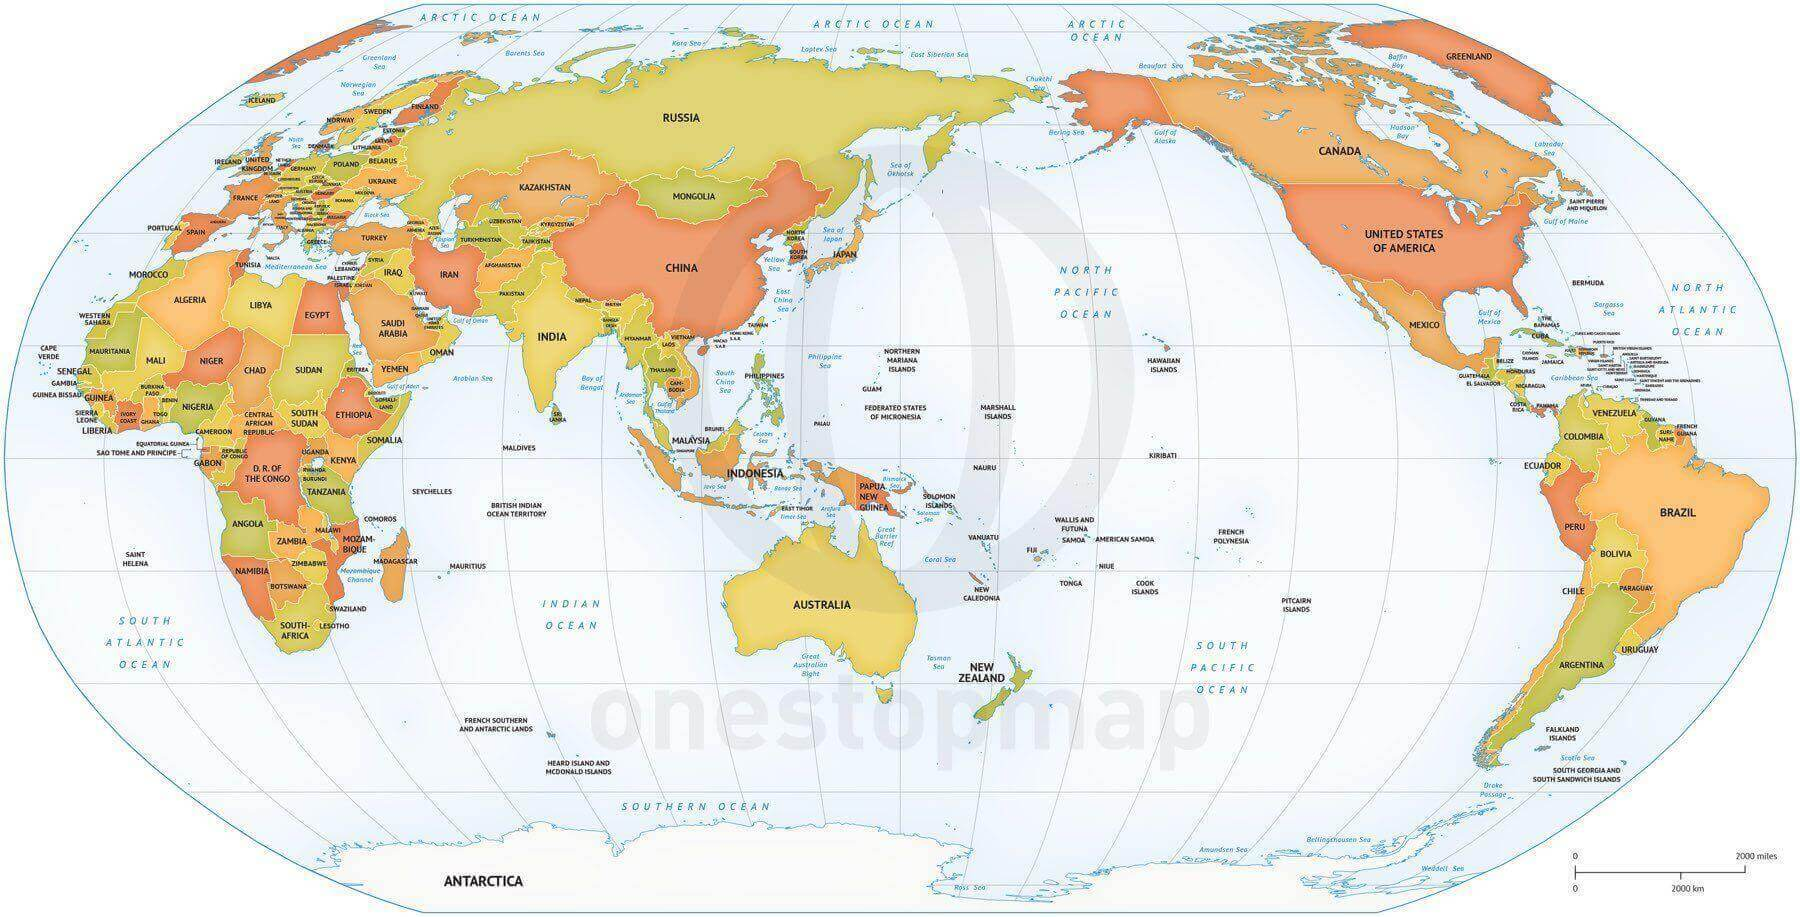 Map of World political Robinson Asia-Australia centered Australia World Map Location on australia map world map, australian world map, english language world map, australia mineral resources map, interactive world map, australia country map, australia map cities, german language world map,